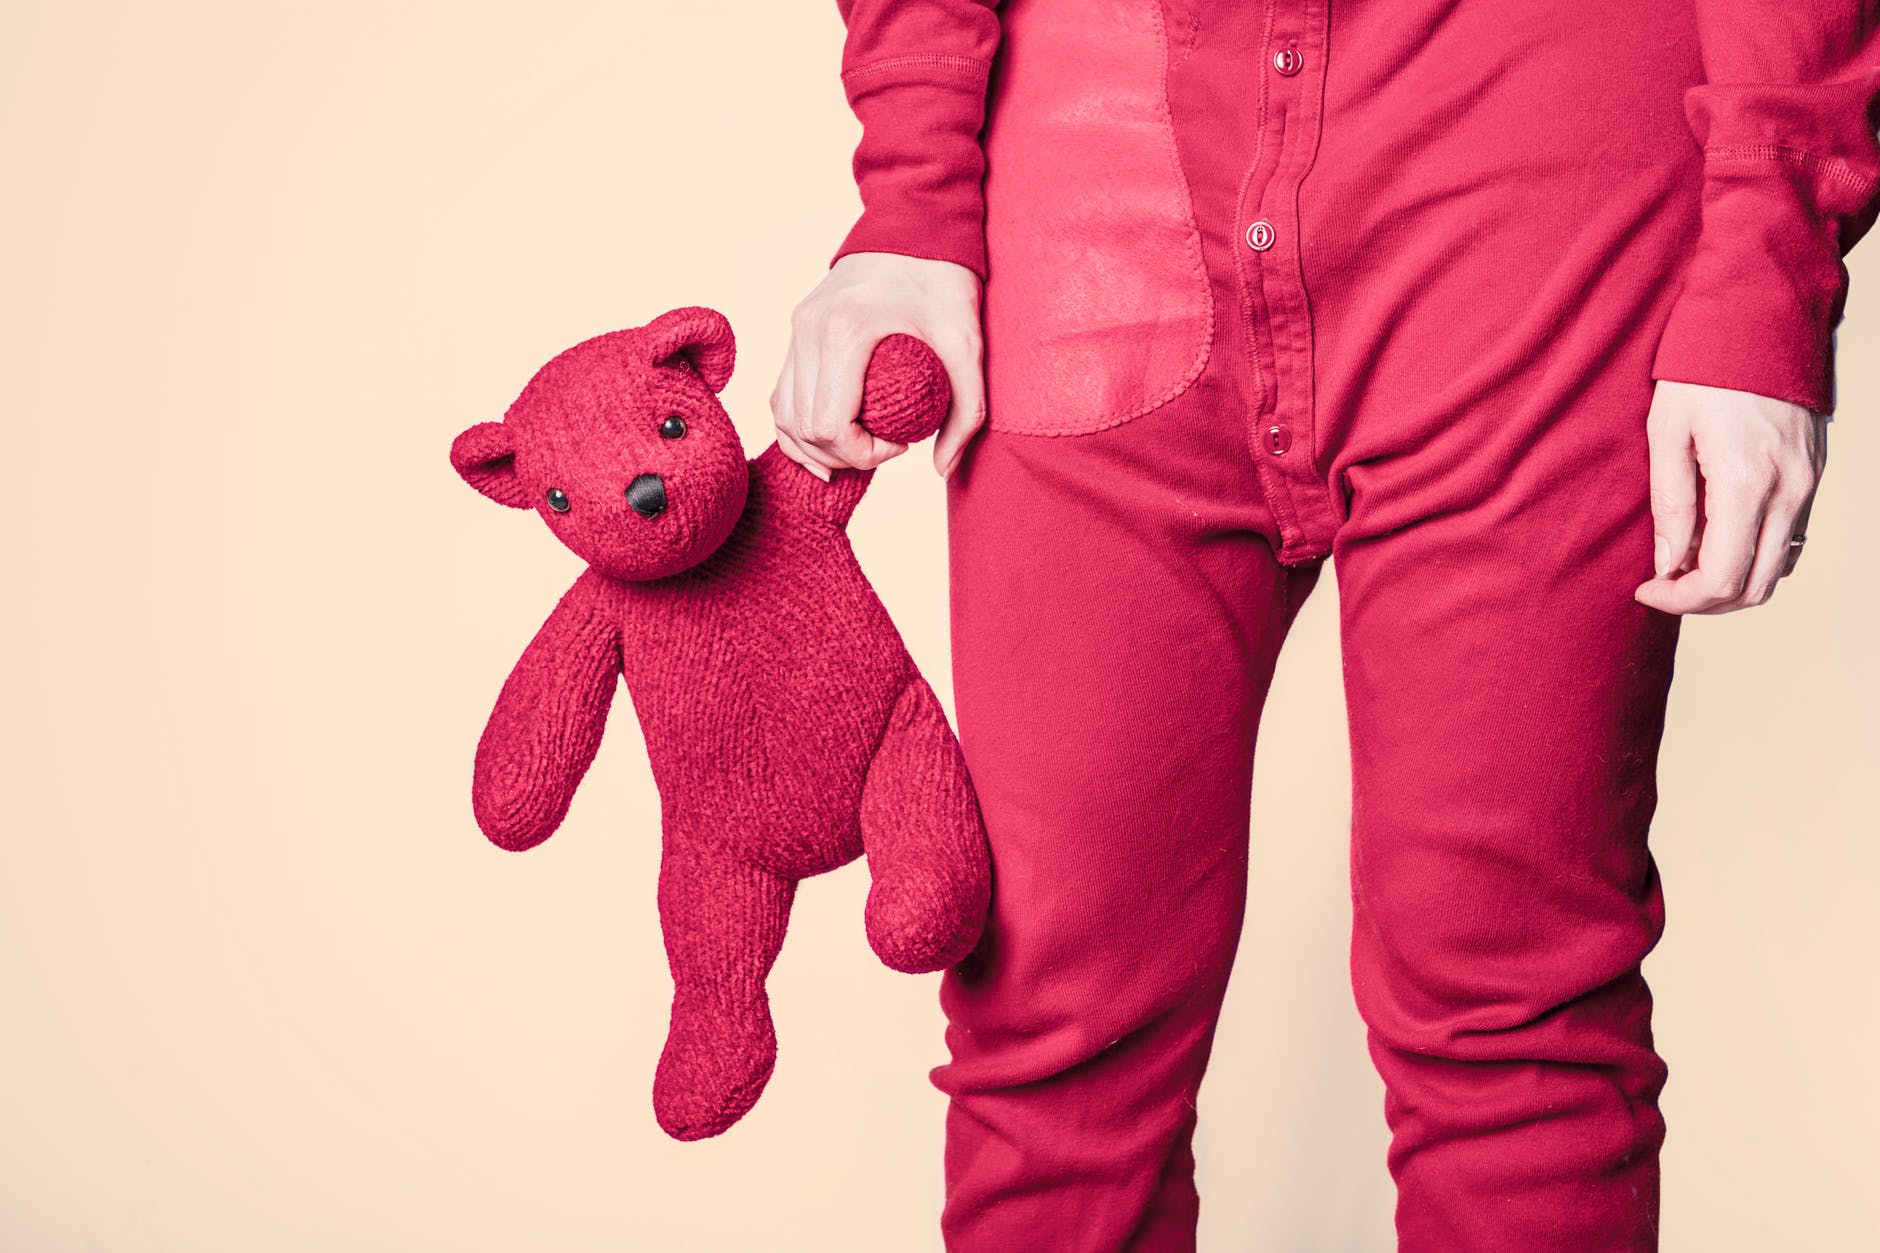 red-bear-child-childhood.jpg